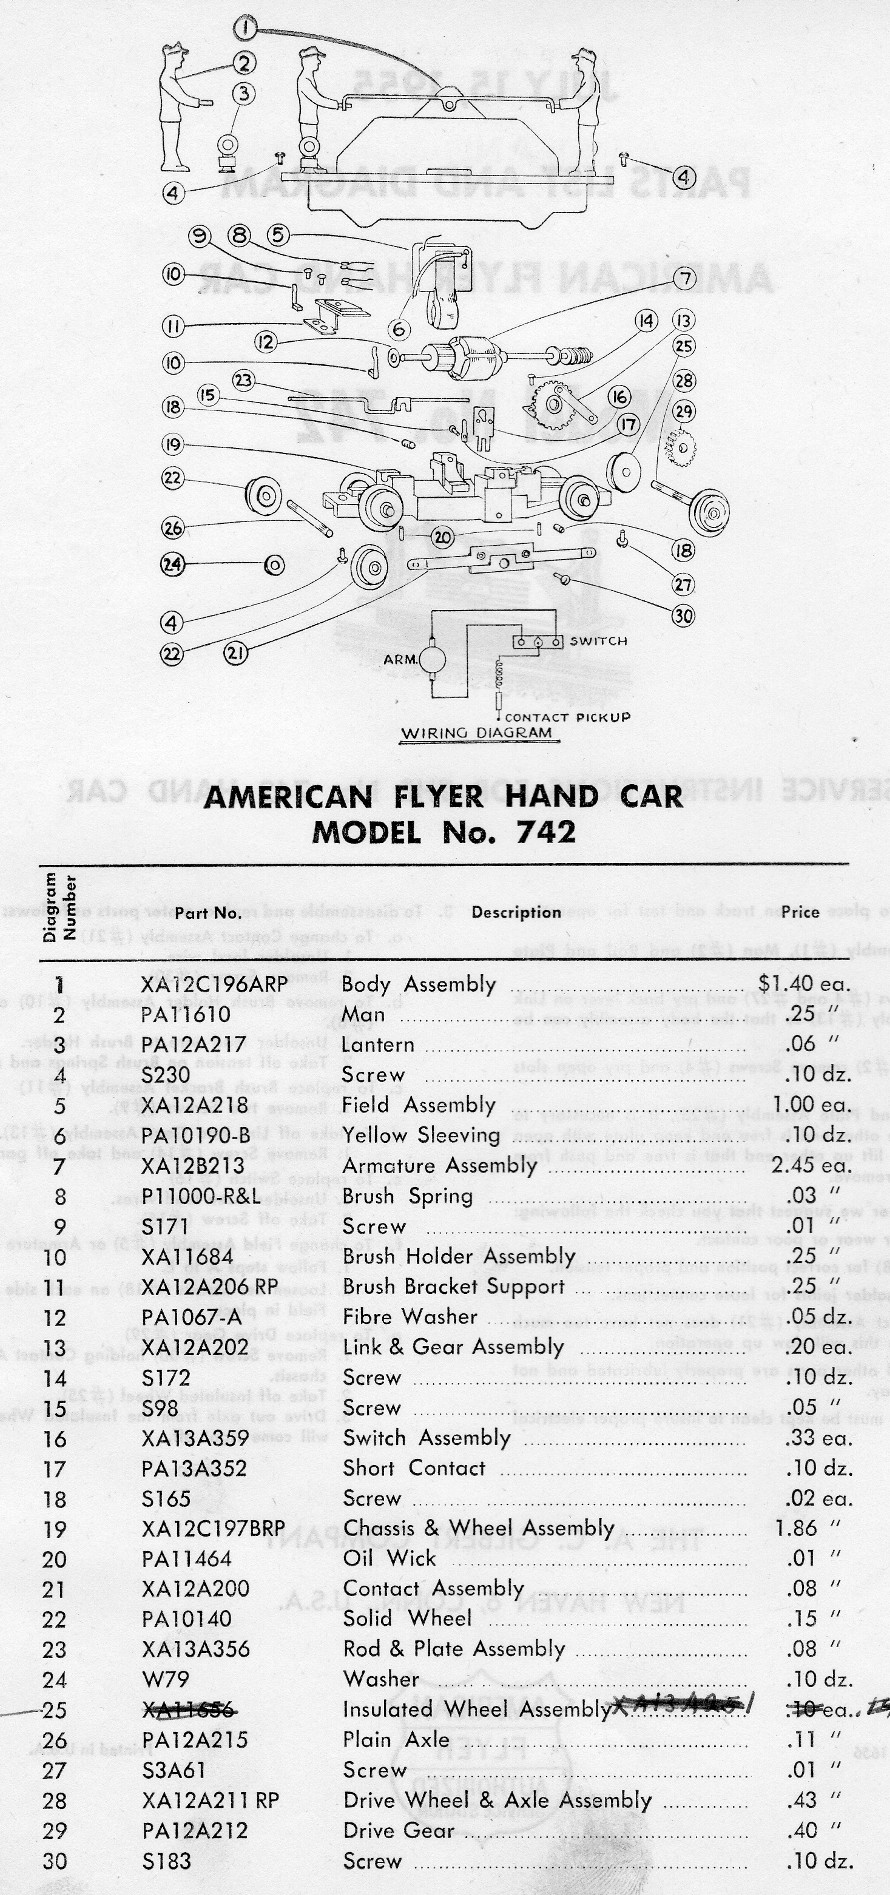 American Flyer 302 Wiring Diagram Auto Electrical Related With